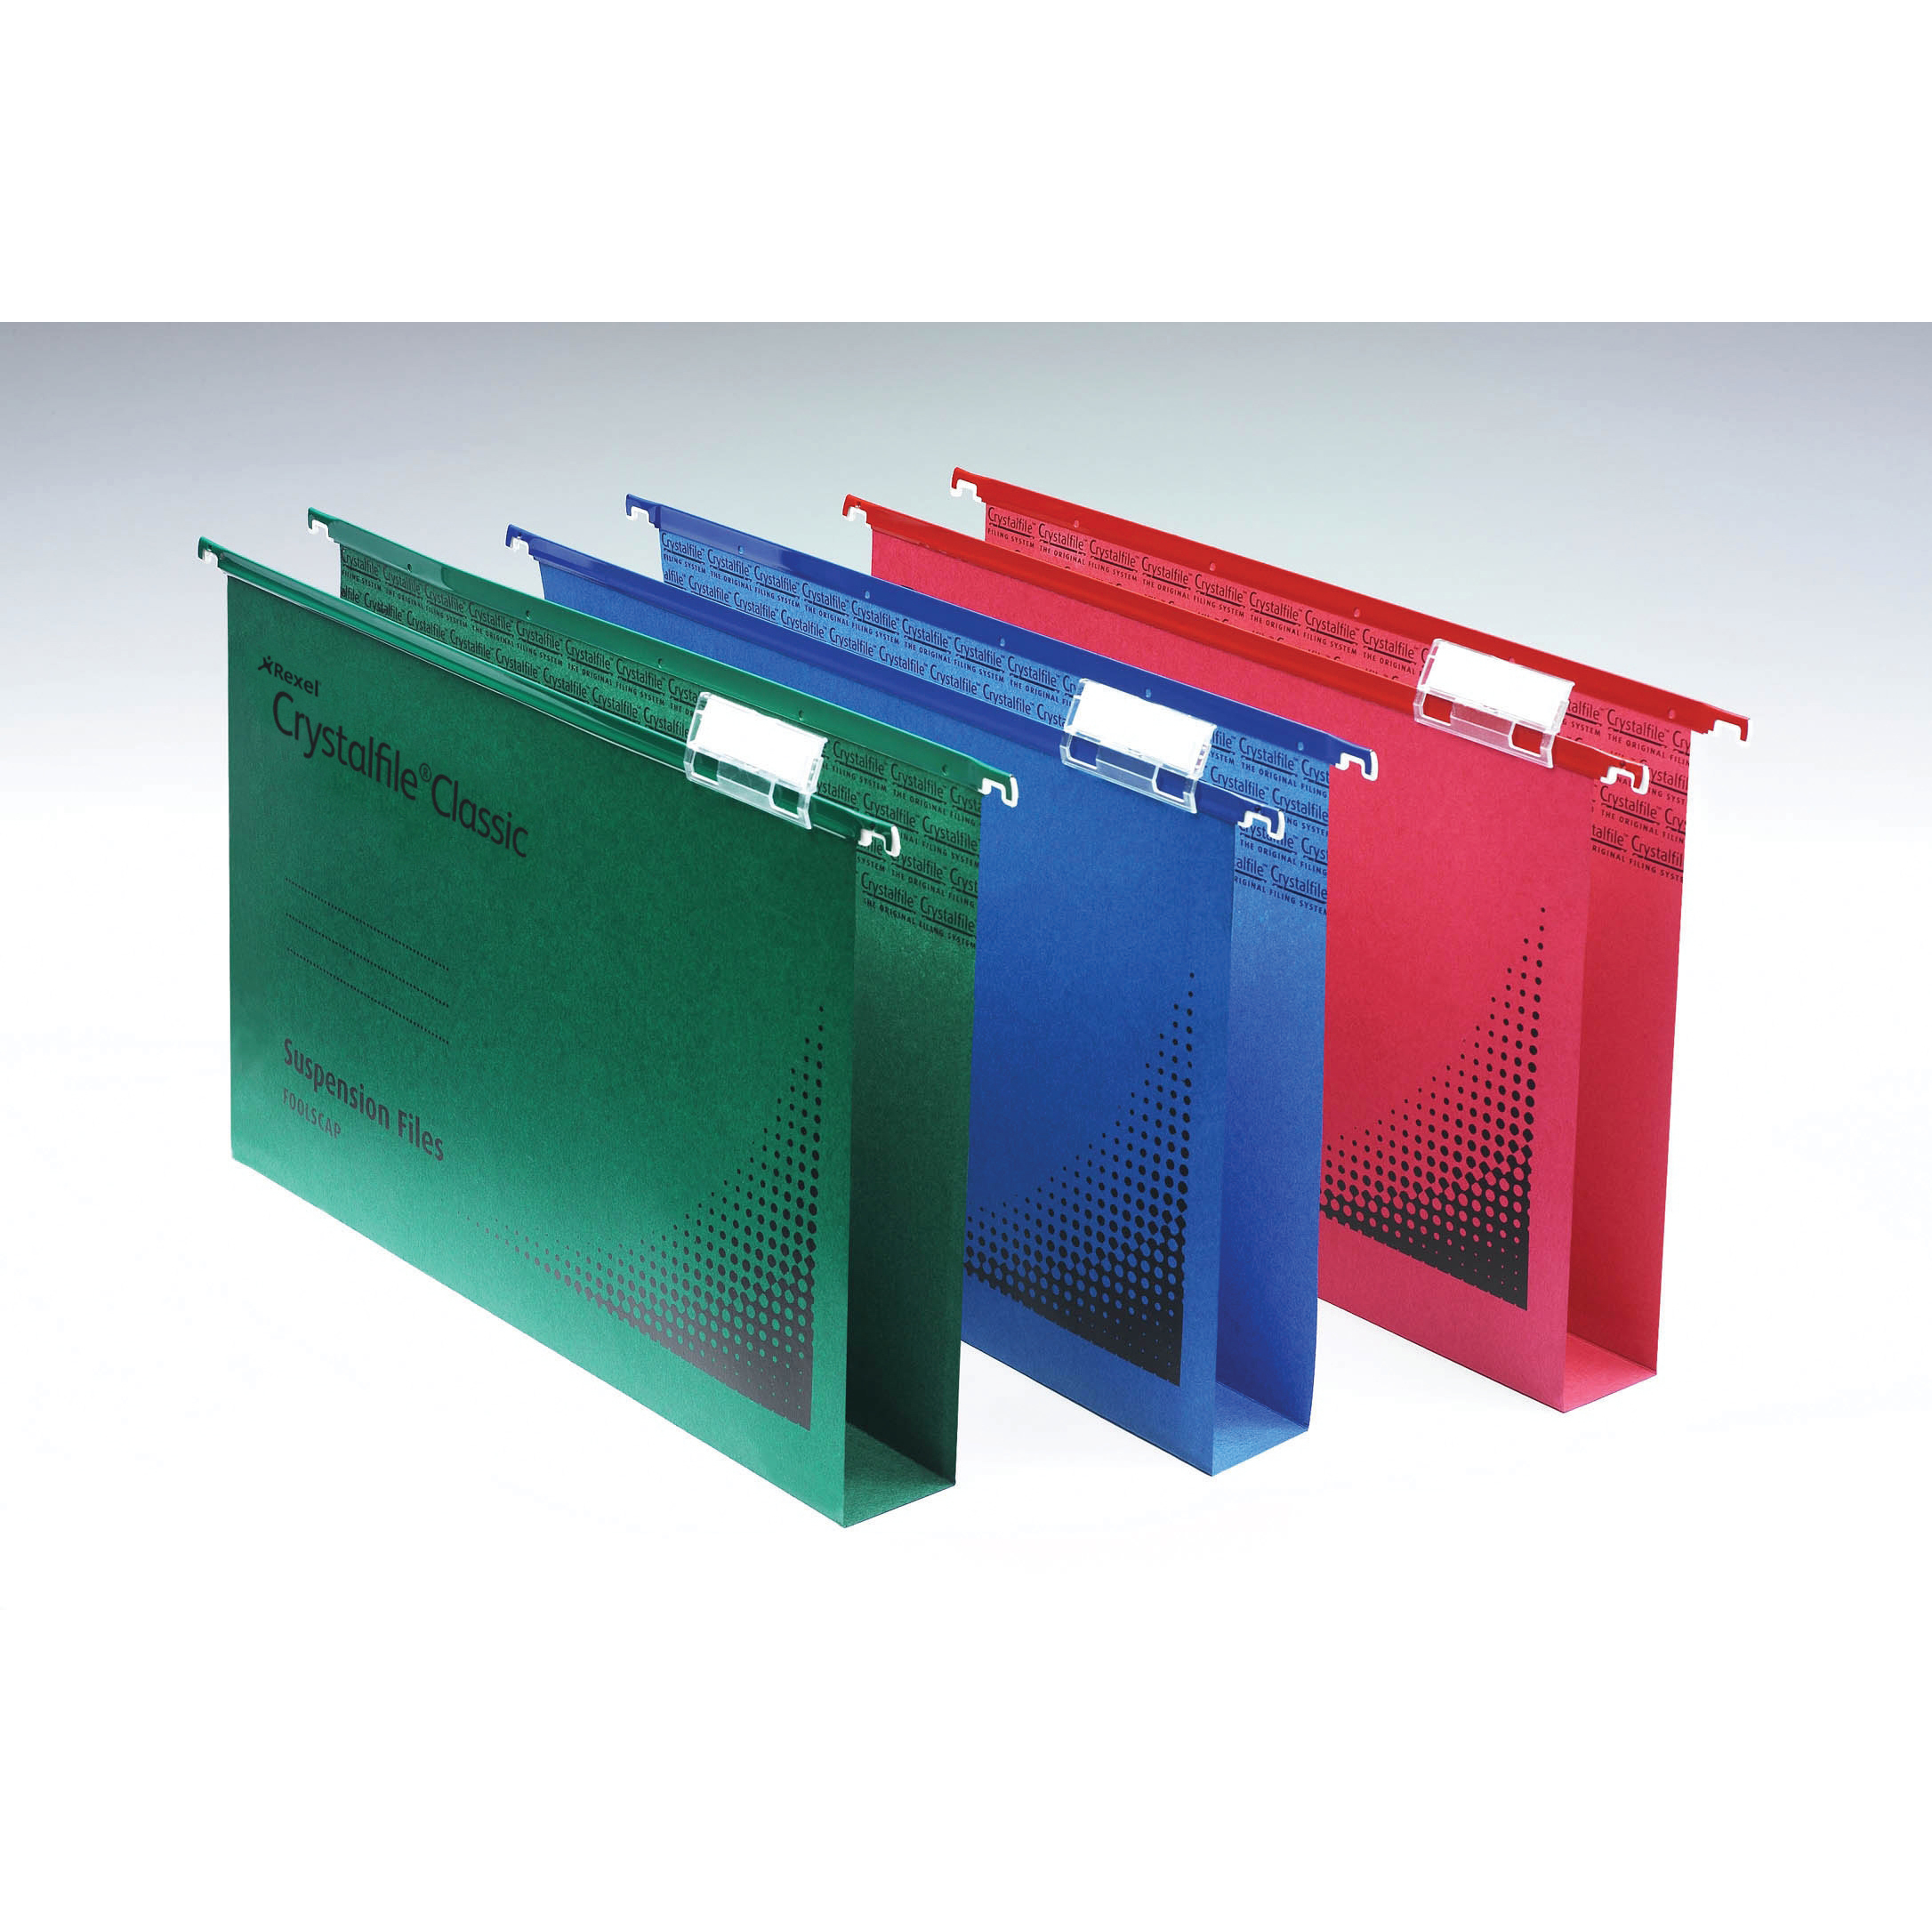 Rexel Crystalfile Classic Suspension File Manilla Wide-base 30mm 230gsm A4 Green Ref 70621 Pack 50